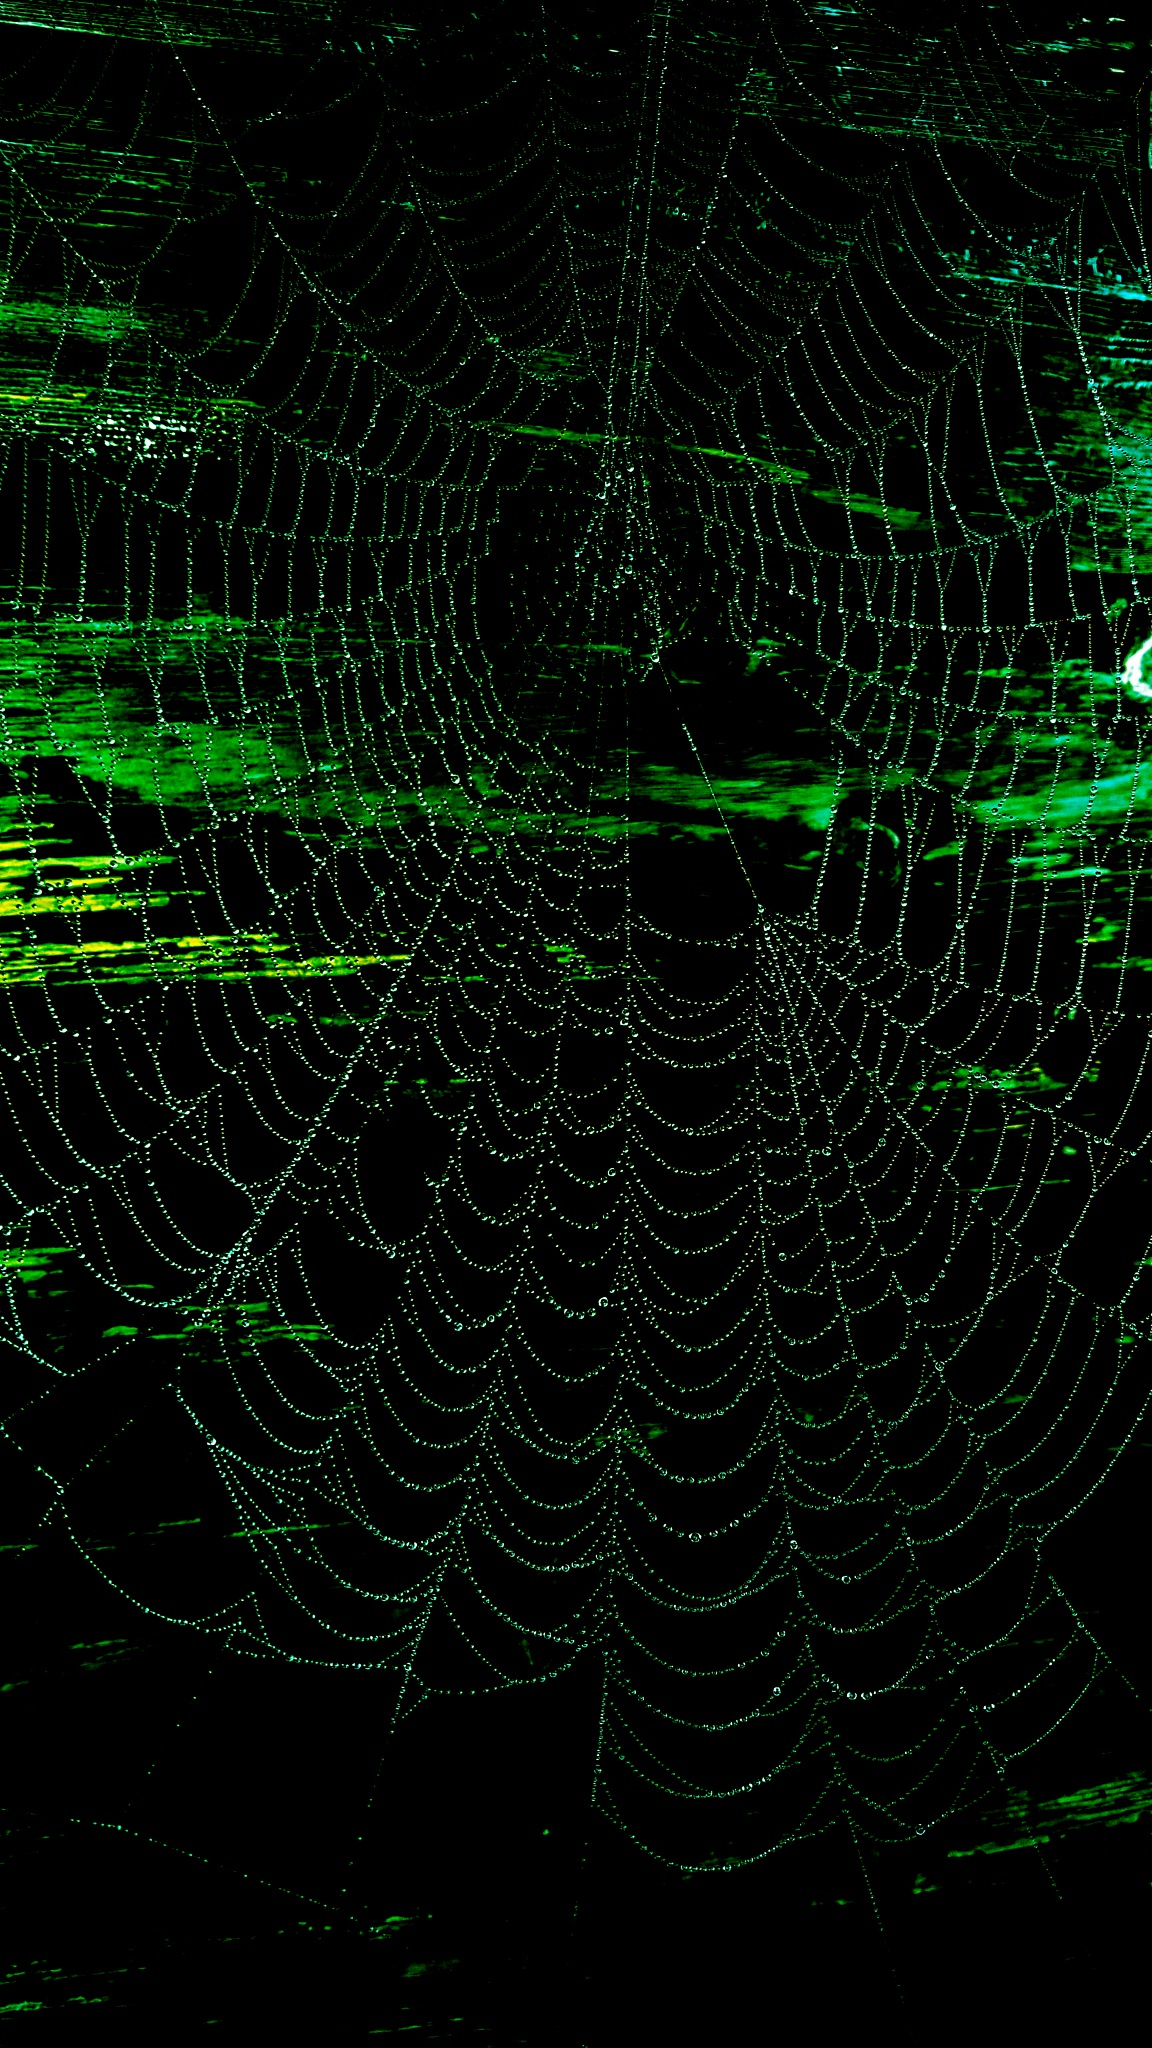 Spooky Spider Web by ♥ Christina Dixon ♥